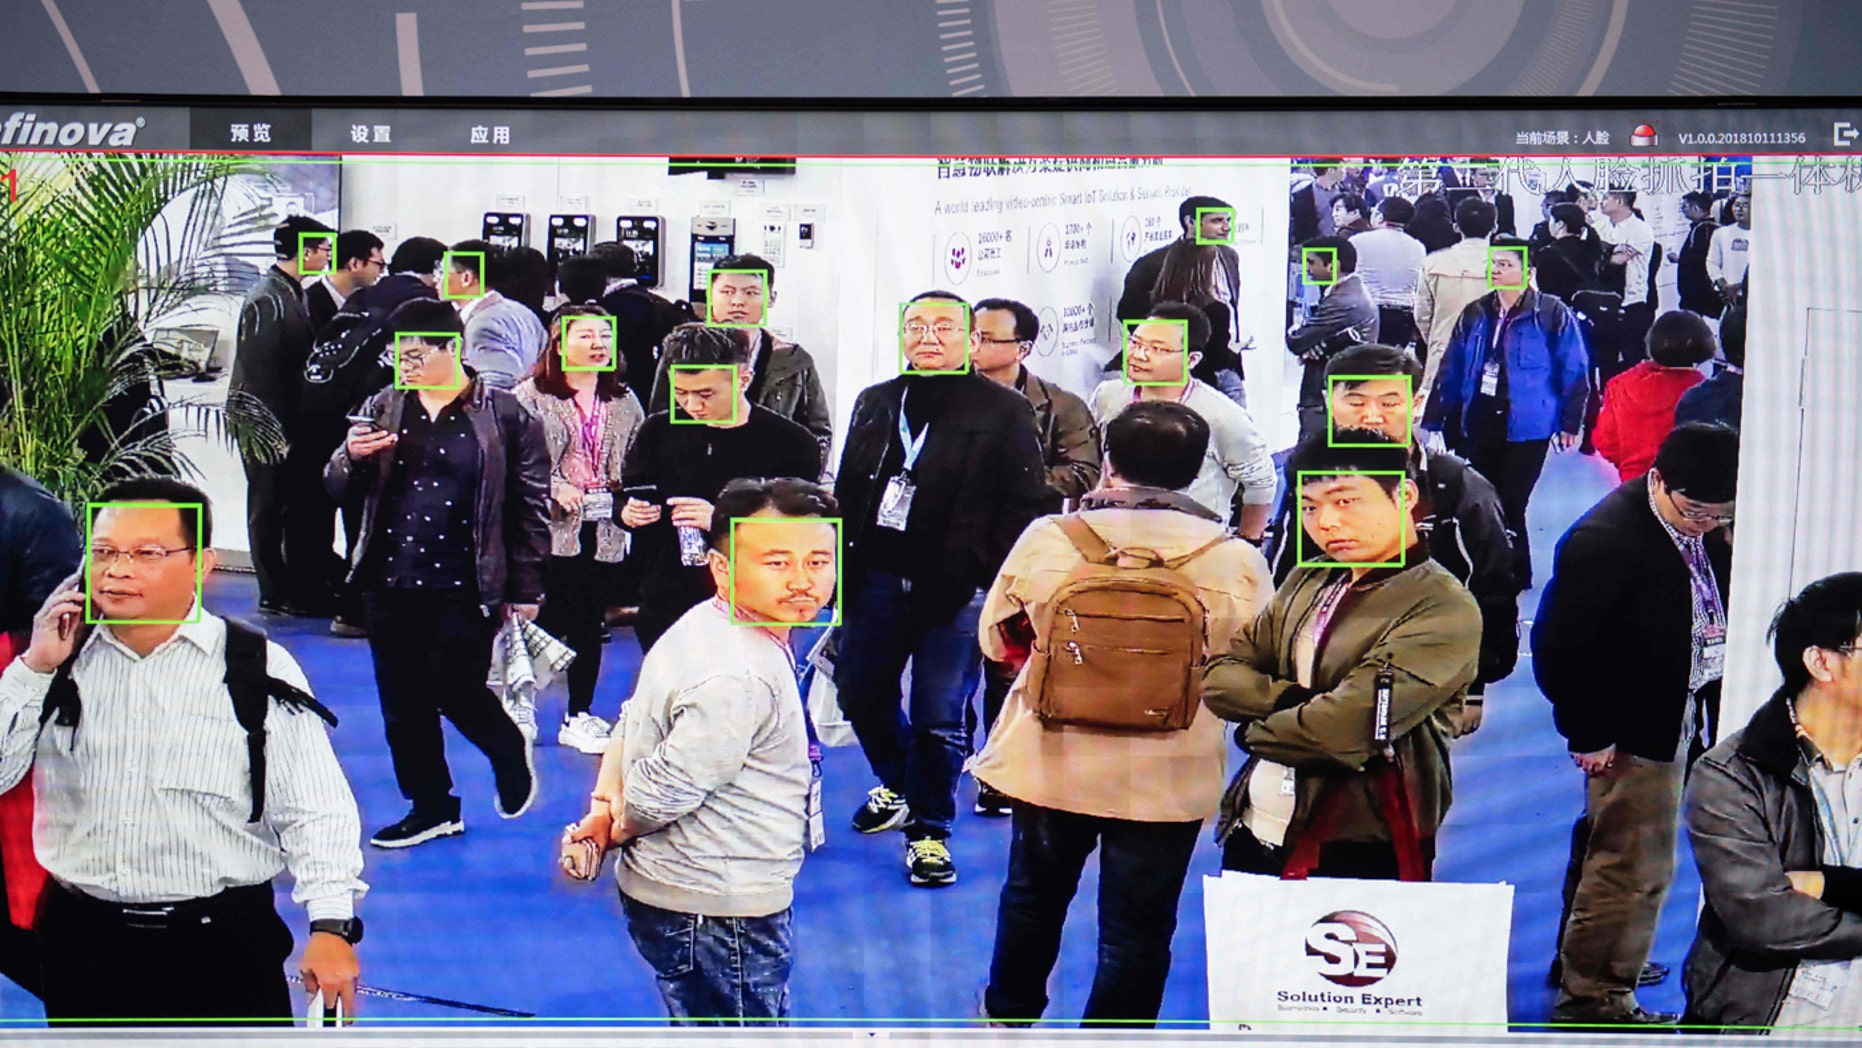 A cloak cloak shows visitors being filmed by AI (Man made Intelligence) safety cameras with facial recognition abilities at the 14th China World Exhibition on Public Security and Security at the China World Exhibition Heart in Beijing on October 24, 2018.